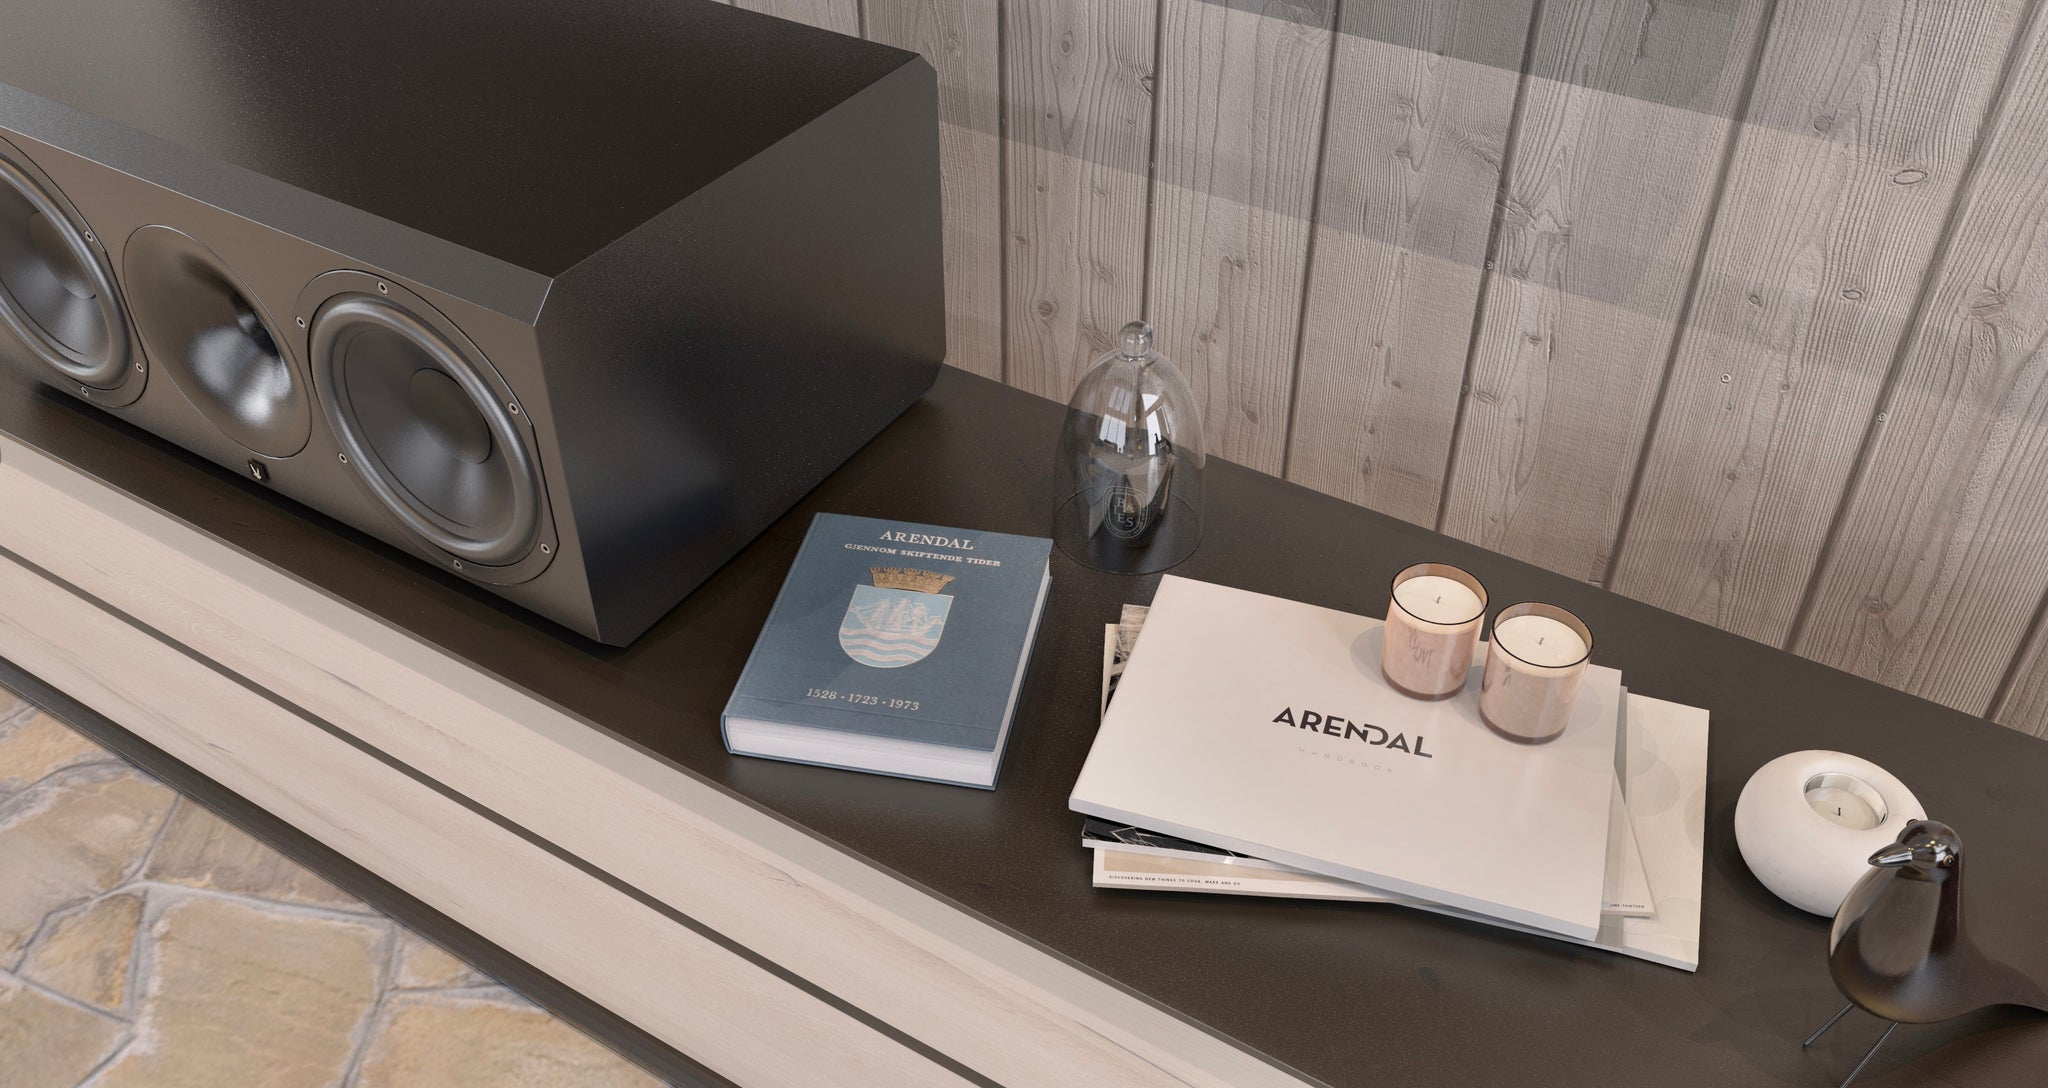 Arendal Sound Cabin Camera Manual Guide (Warranty Page)